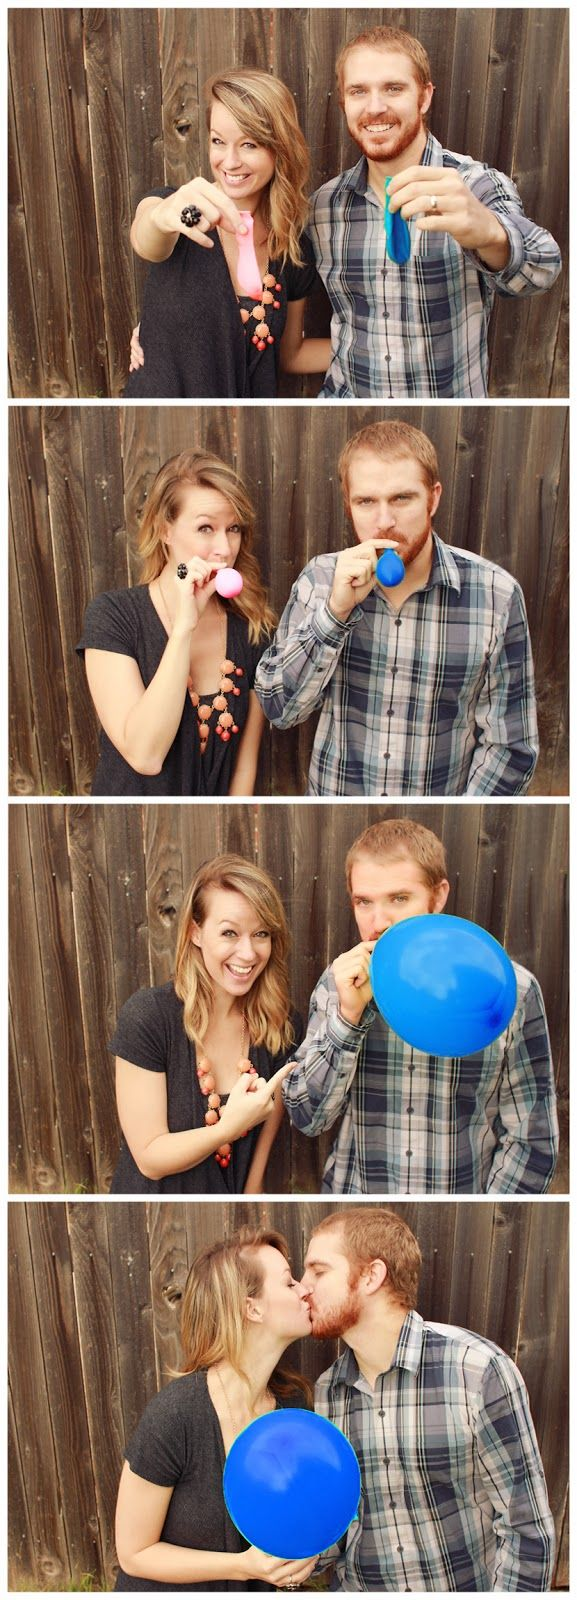 16 Weeks with Baby #2 - Gender Reveal Idea Balloons | Keeping Up With The Morgans